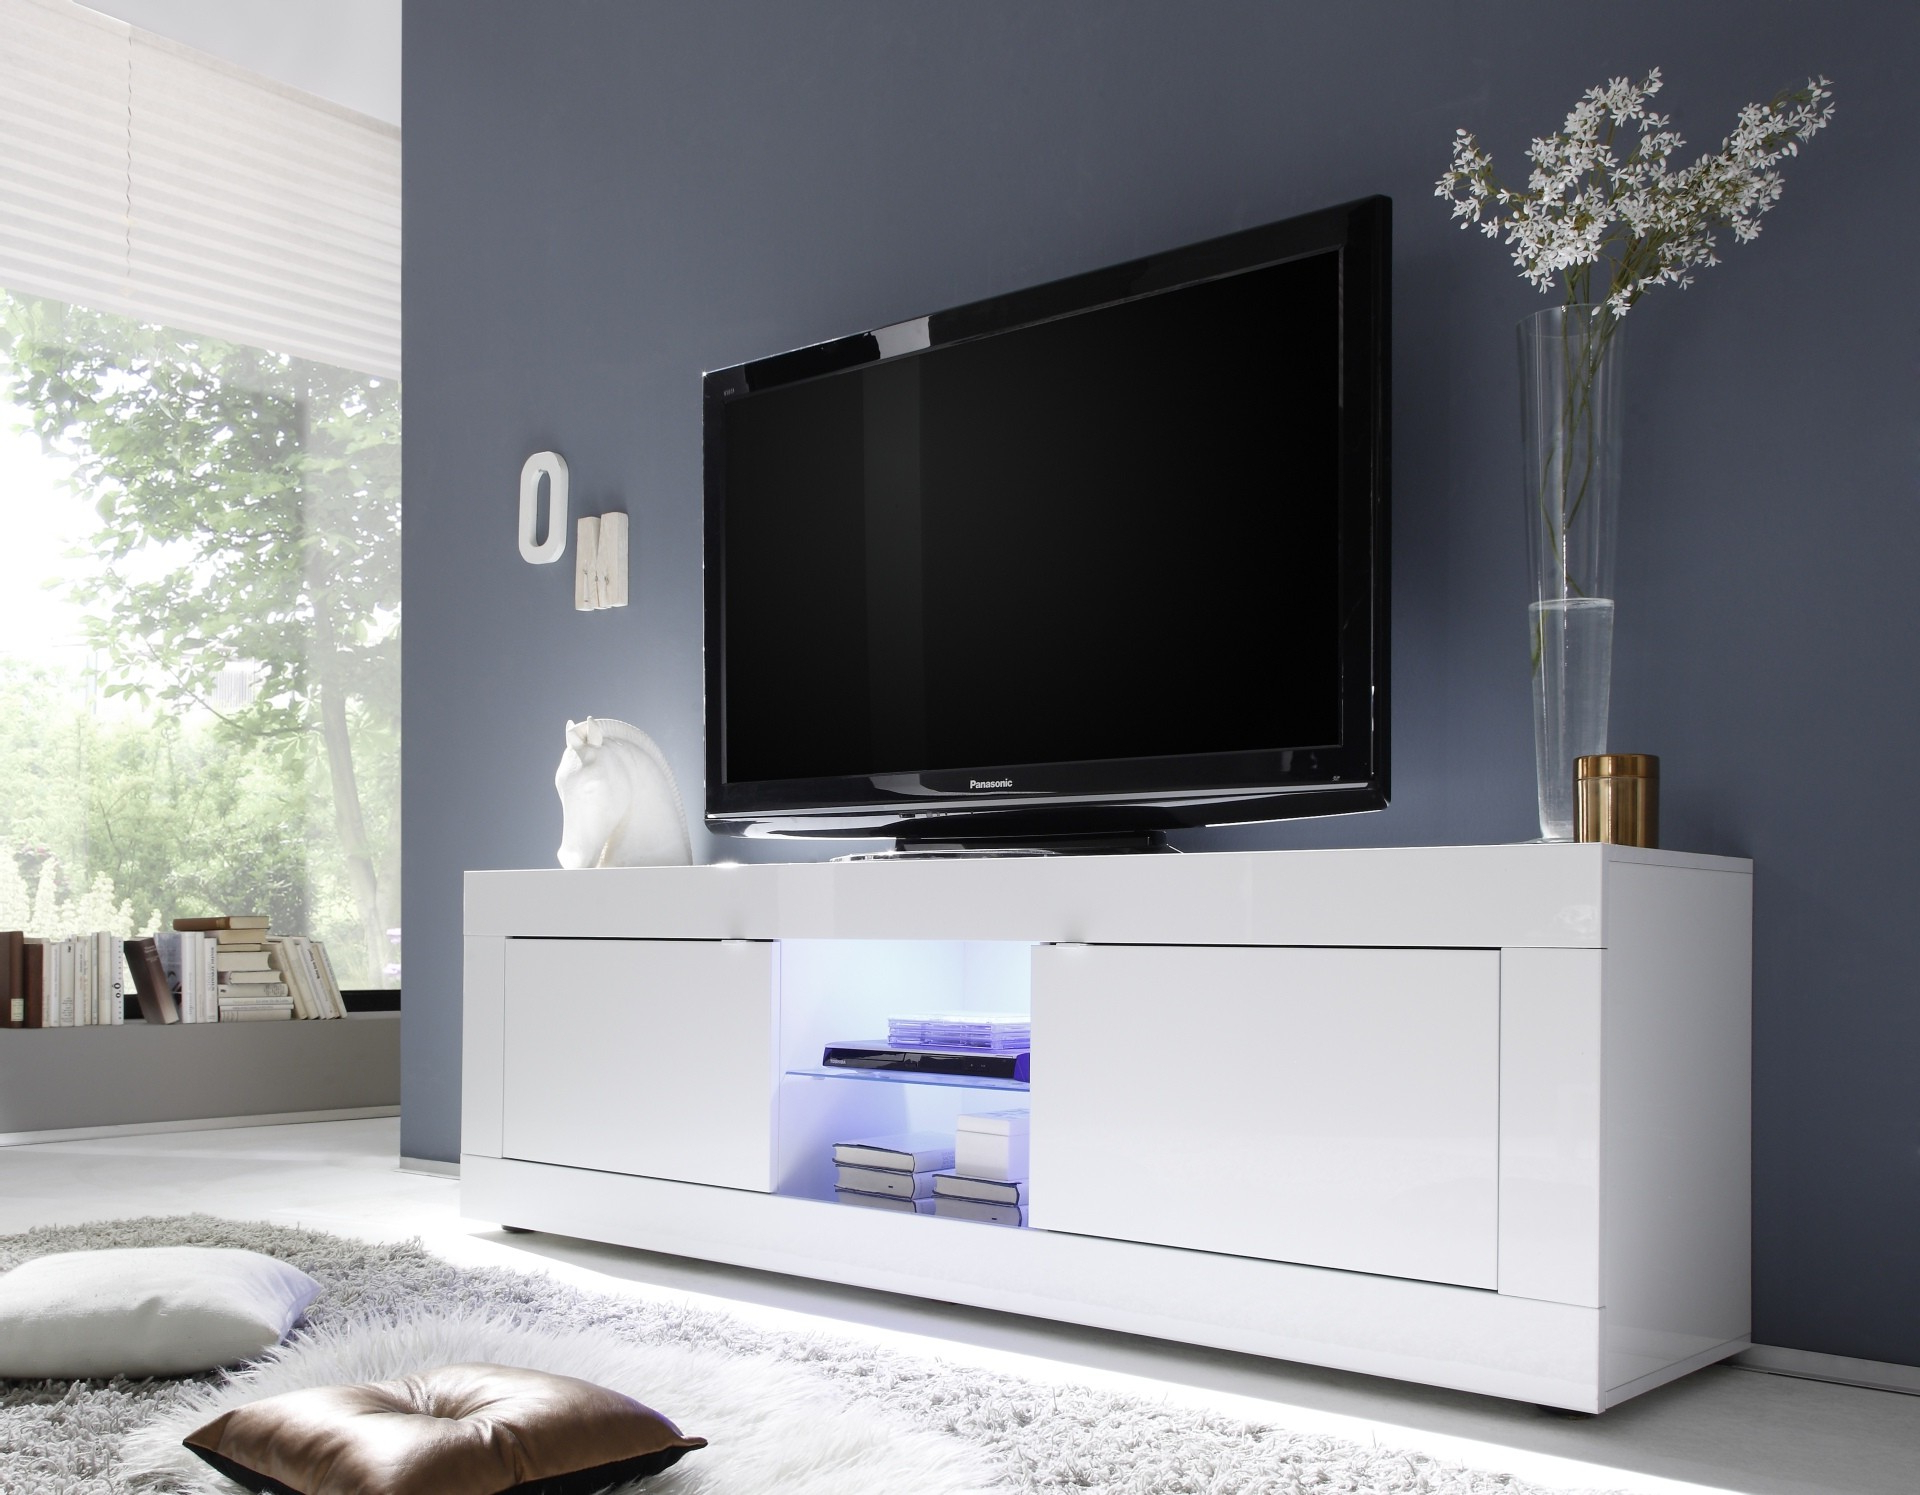 Dolcevita Ii Gloss Tv Stand – Tv Stands (1236) – Sena Home Furniture In Most Recently Released White Tv Cabinets (View 1 of 20)